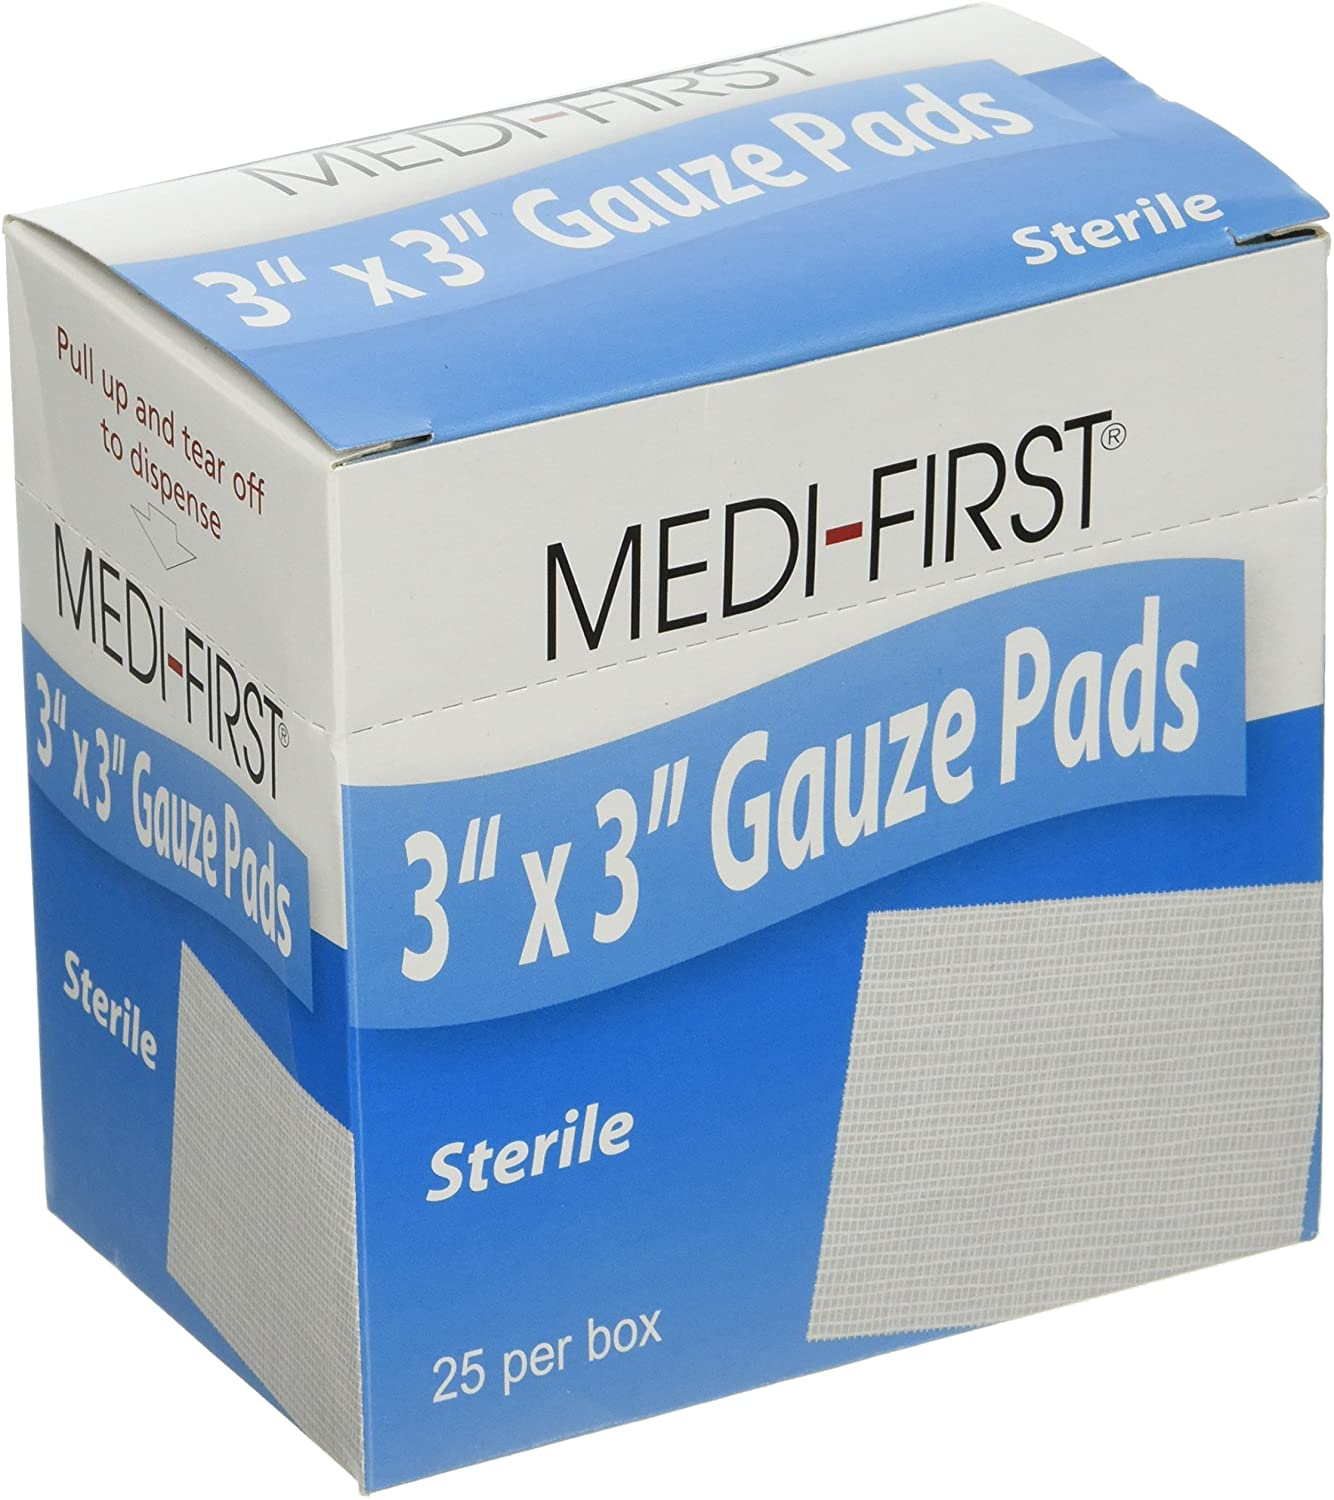 Medique Products 61273 Sterile Gauze Pad, 3-Inch by 3-Inch, 25 Per Box